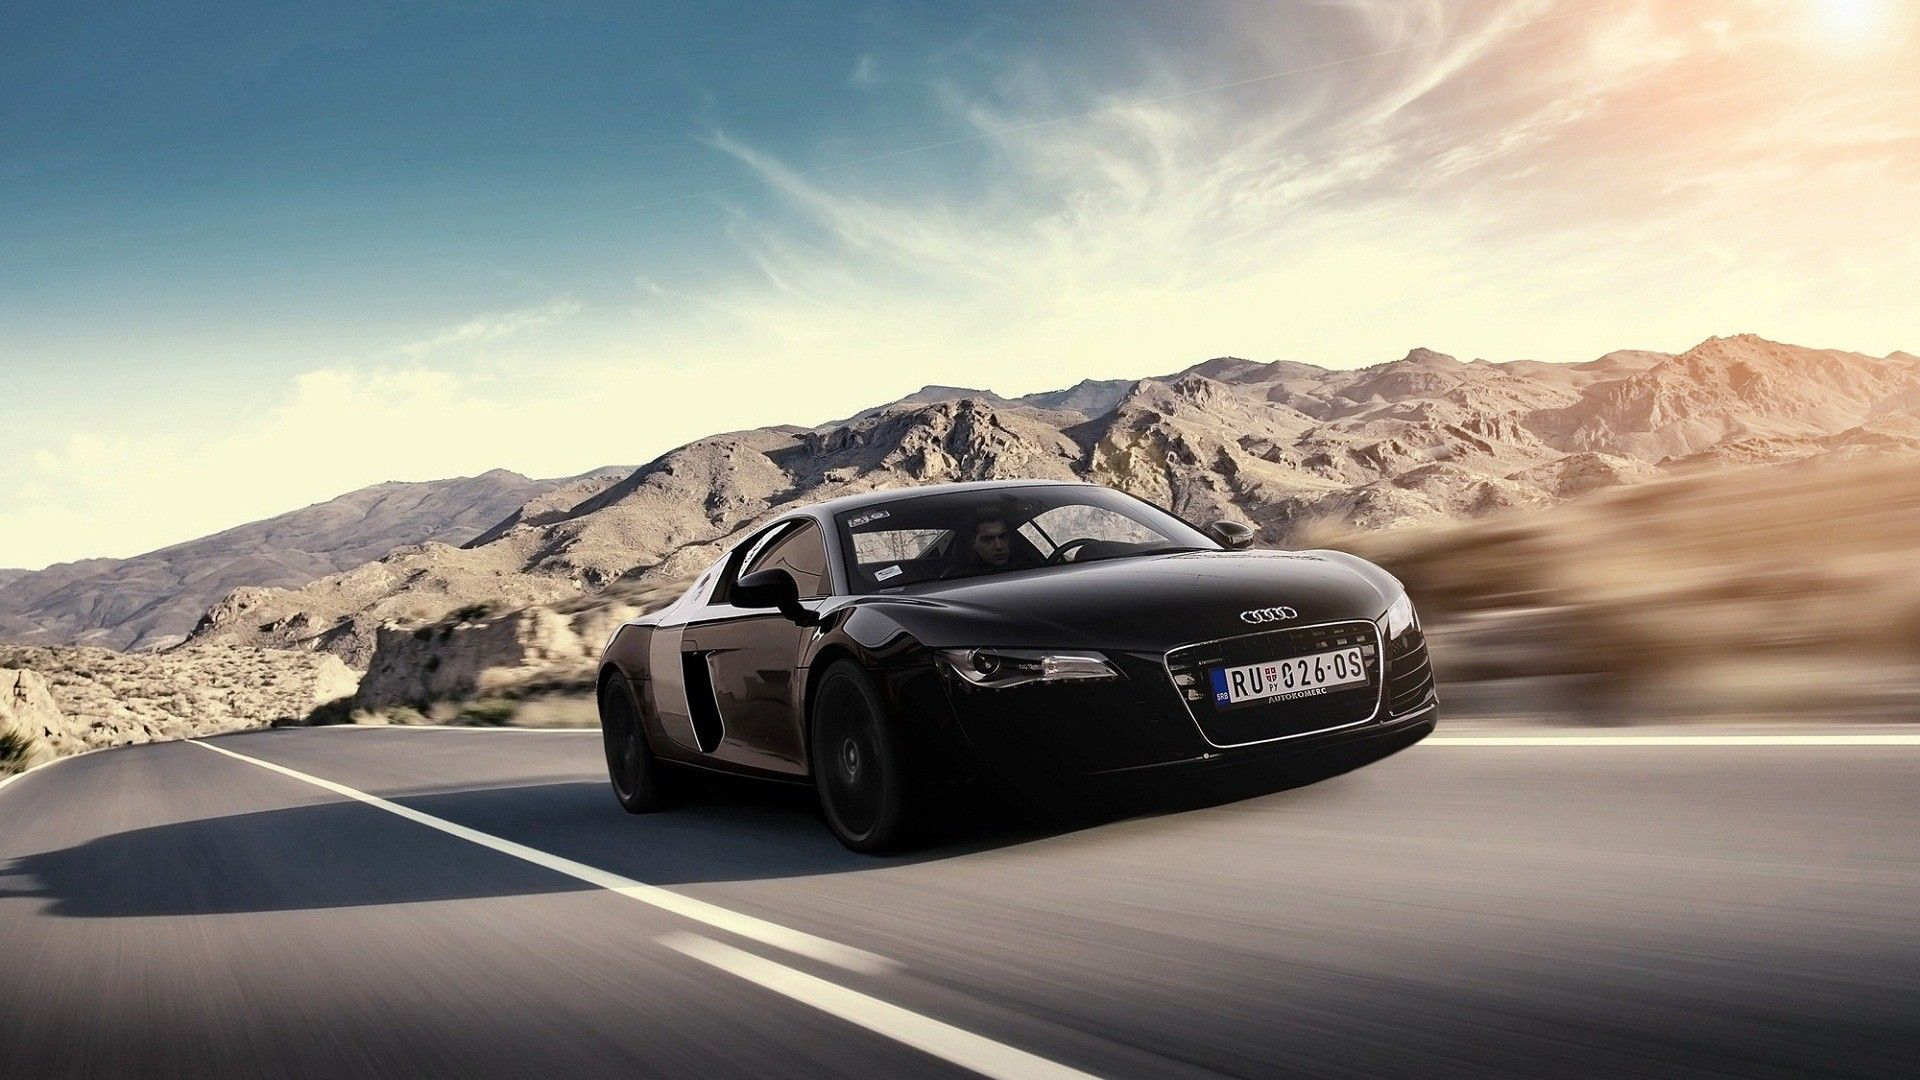 Audi R8 Wallpaper Black